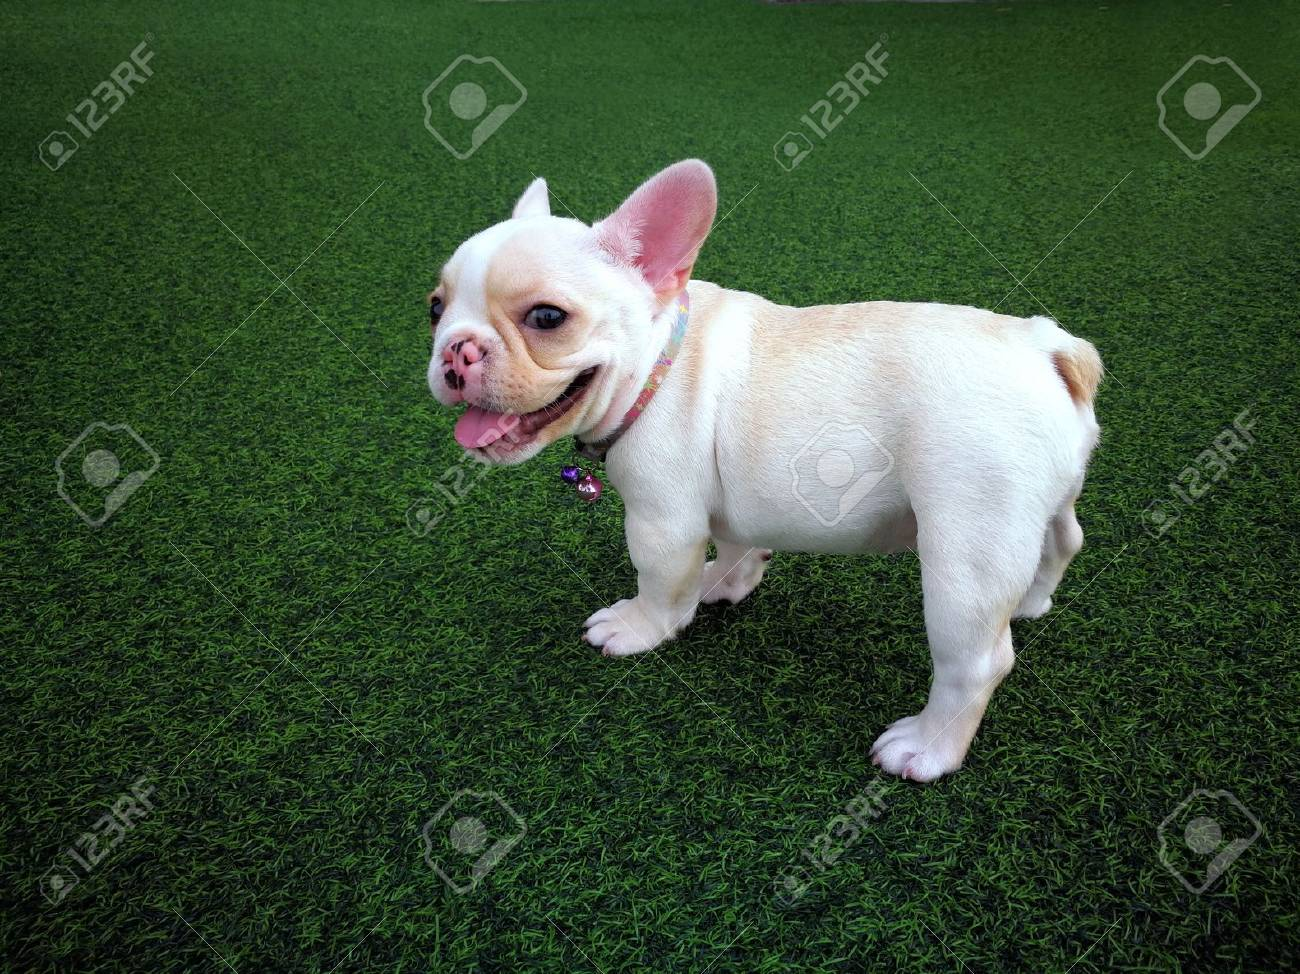 White brown french bulldog puppy standing on green artificial grass - 76573048